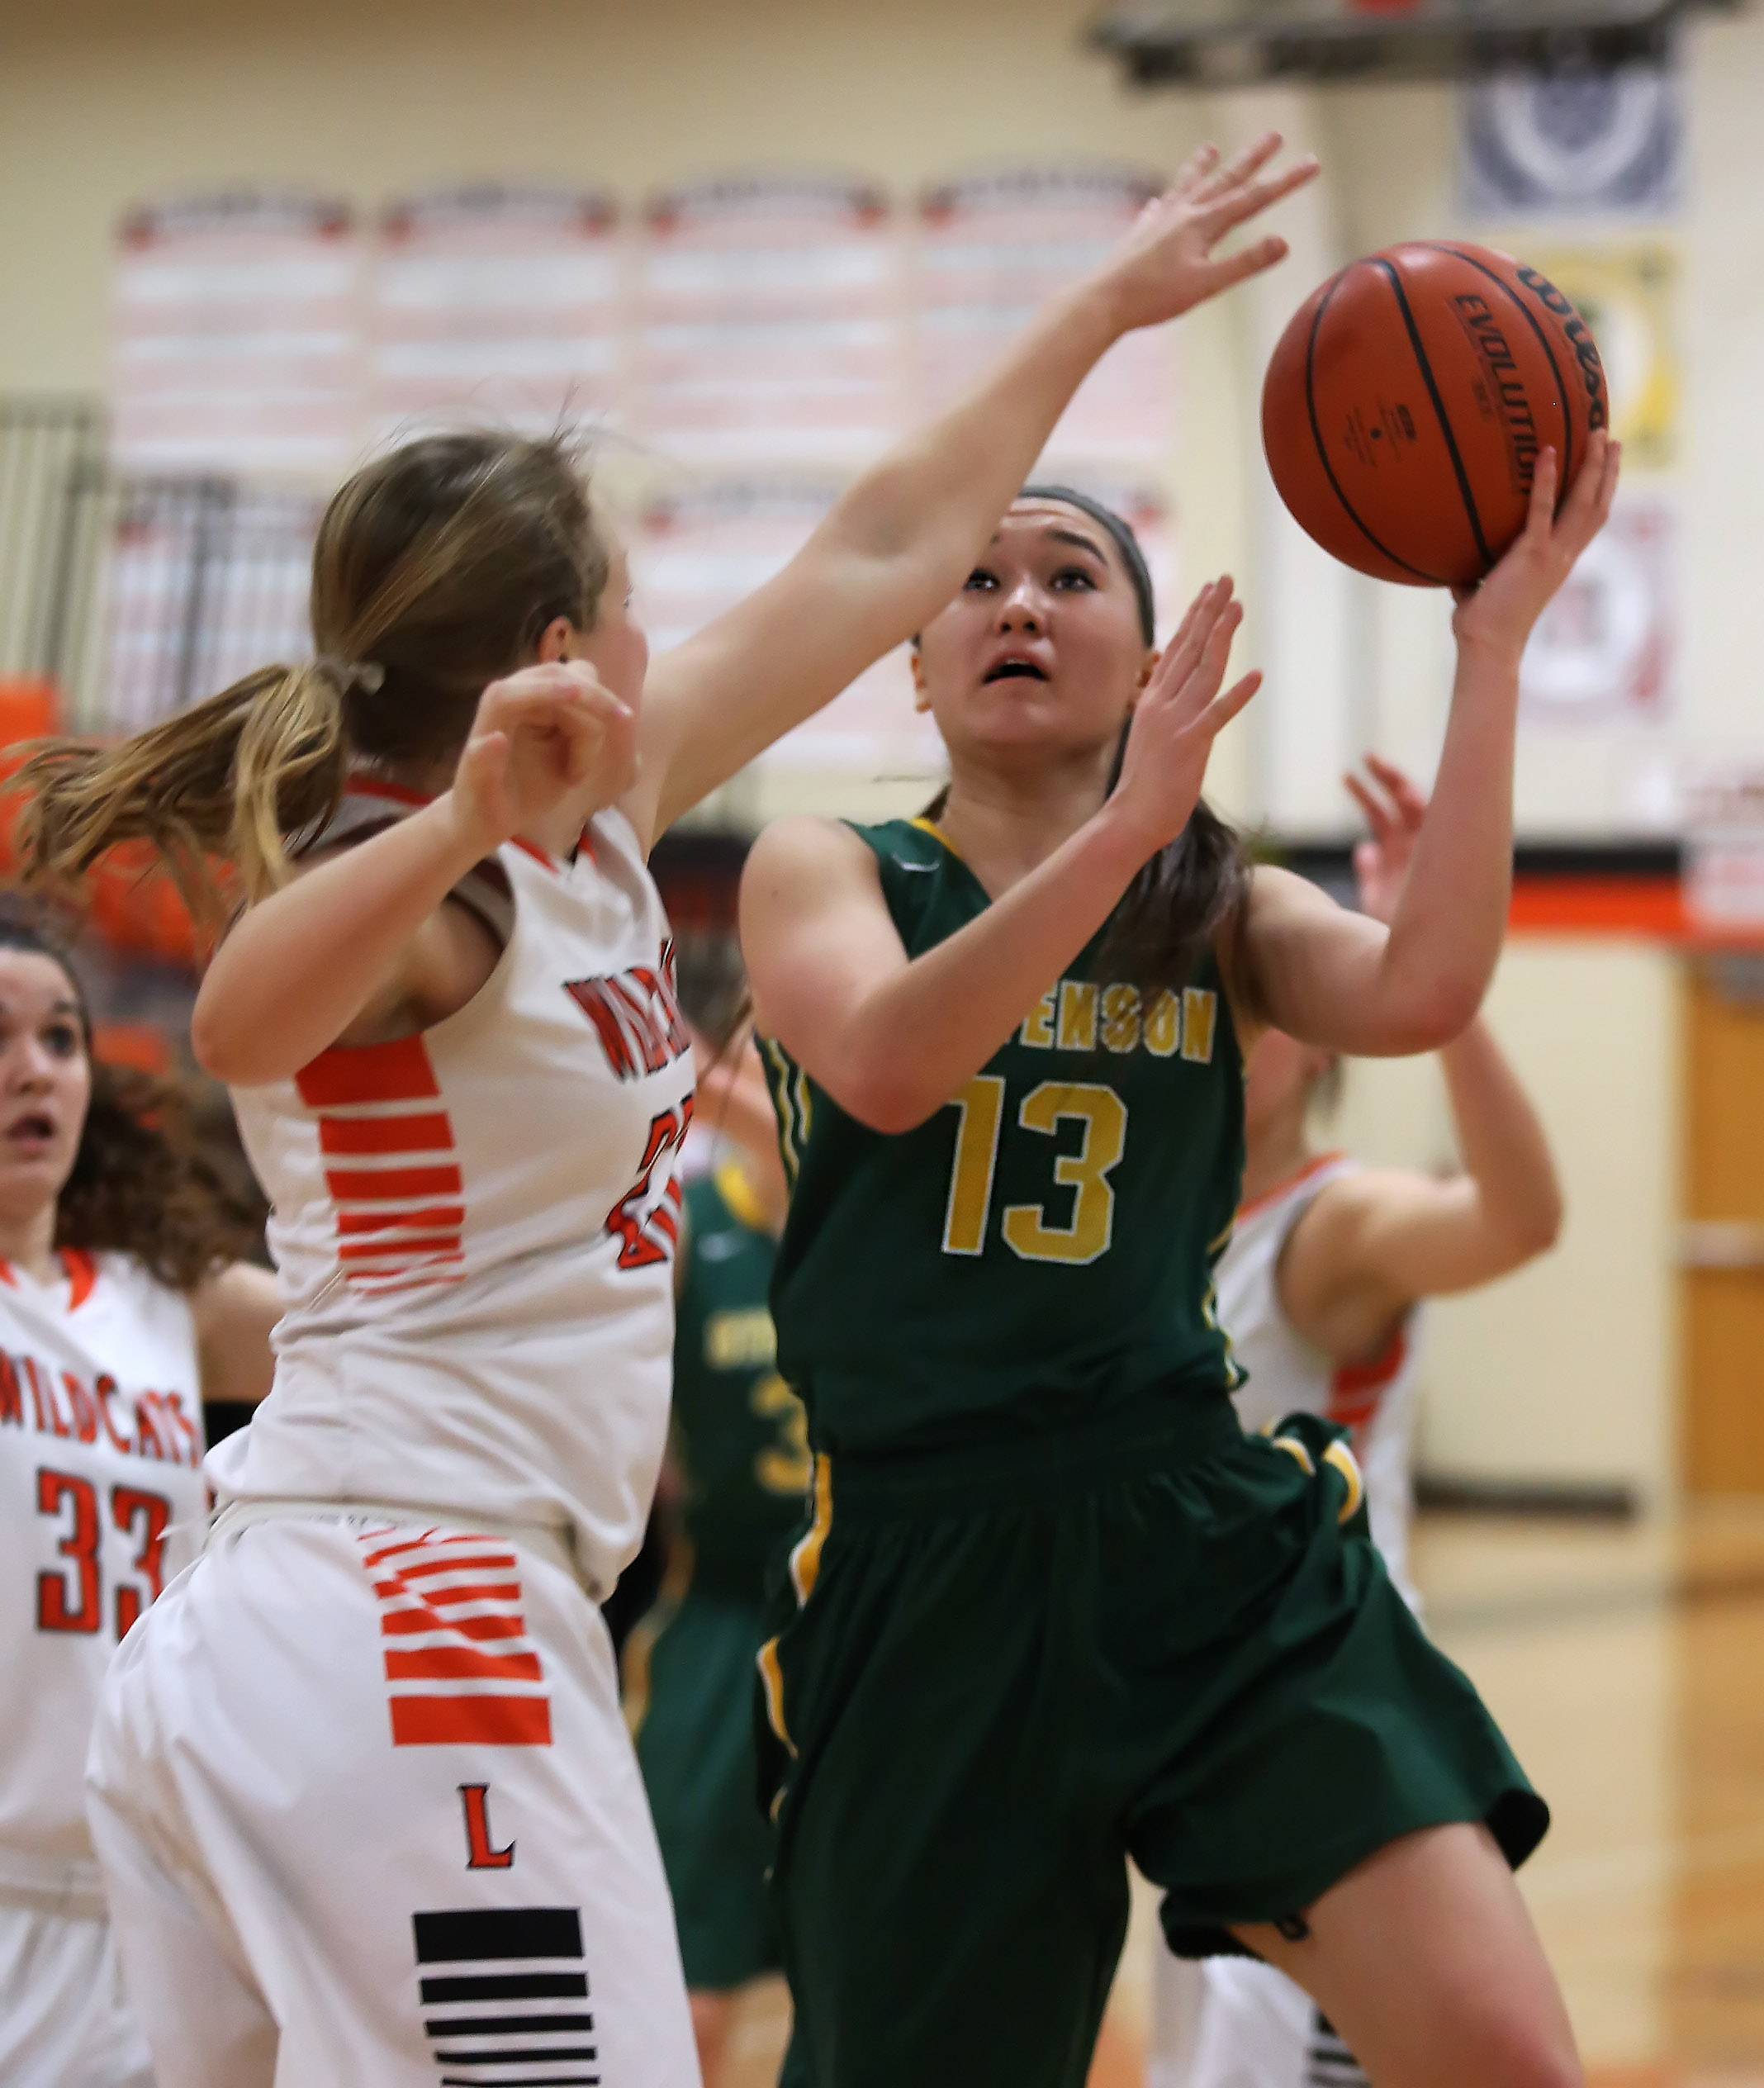 Stevenson guard Kiana Cencula goes up for a layup over Libertyville forward Sarah Pavelske.